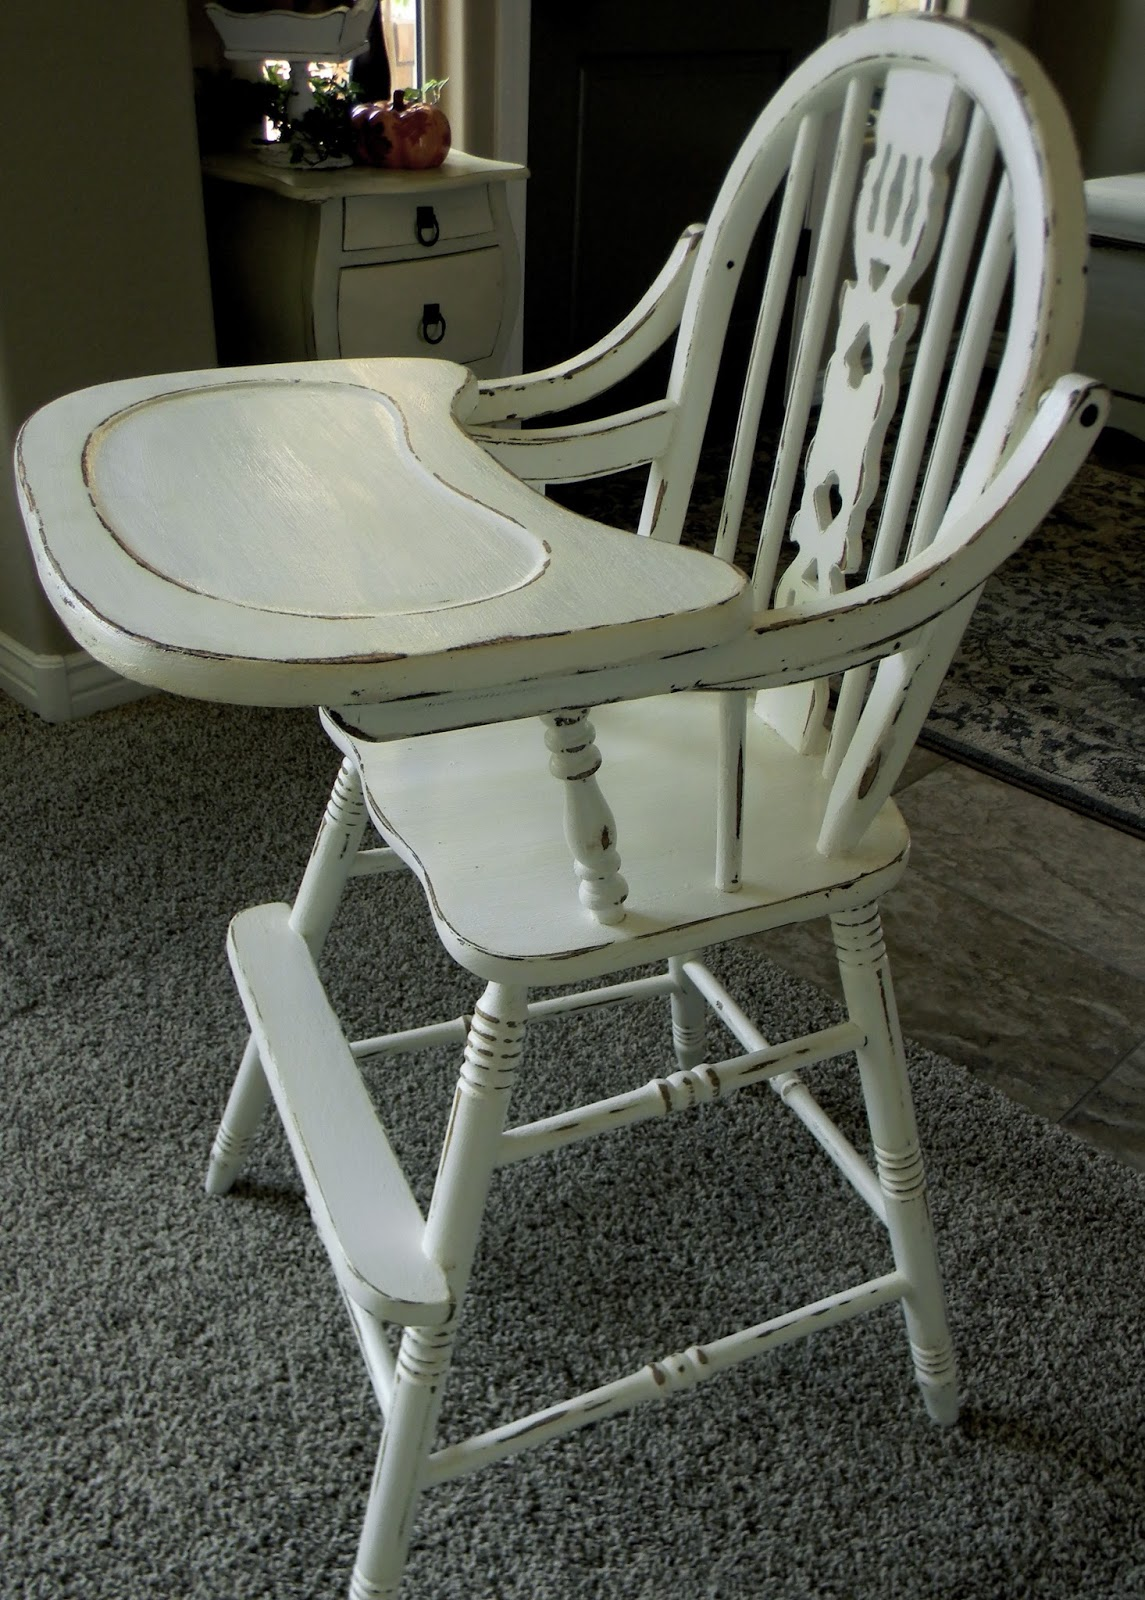 antique high chairs tempur pedic tp4000 chair little bit of paint refinished